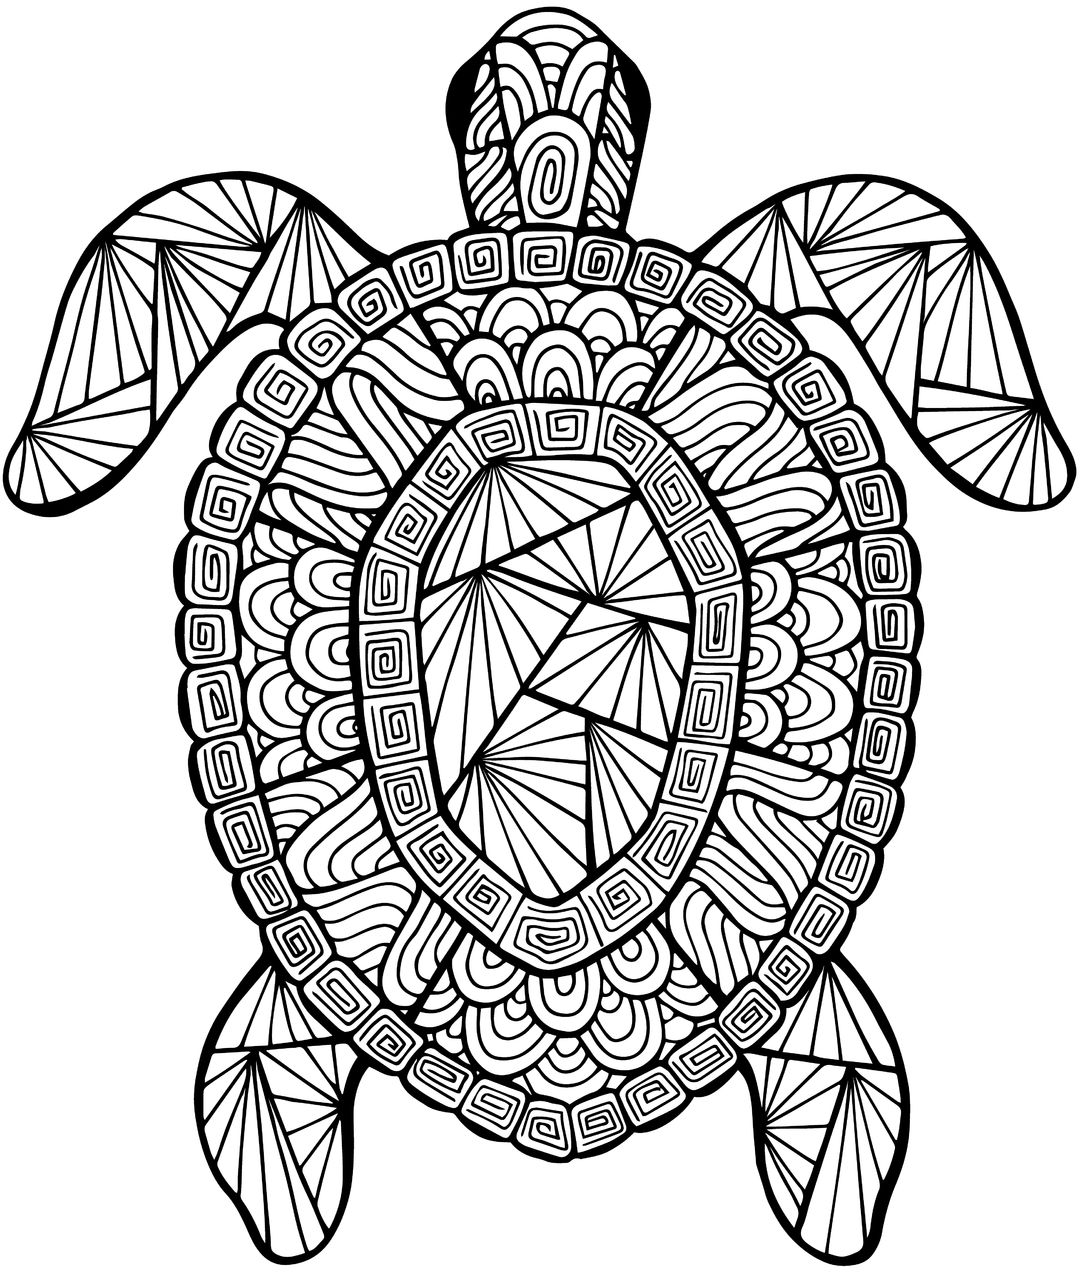 free printable detailed coloring pages detailed coloring pages for adults coloring home coloring free detailed printable pages